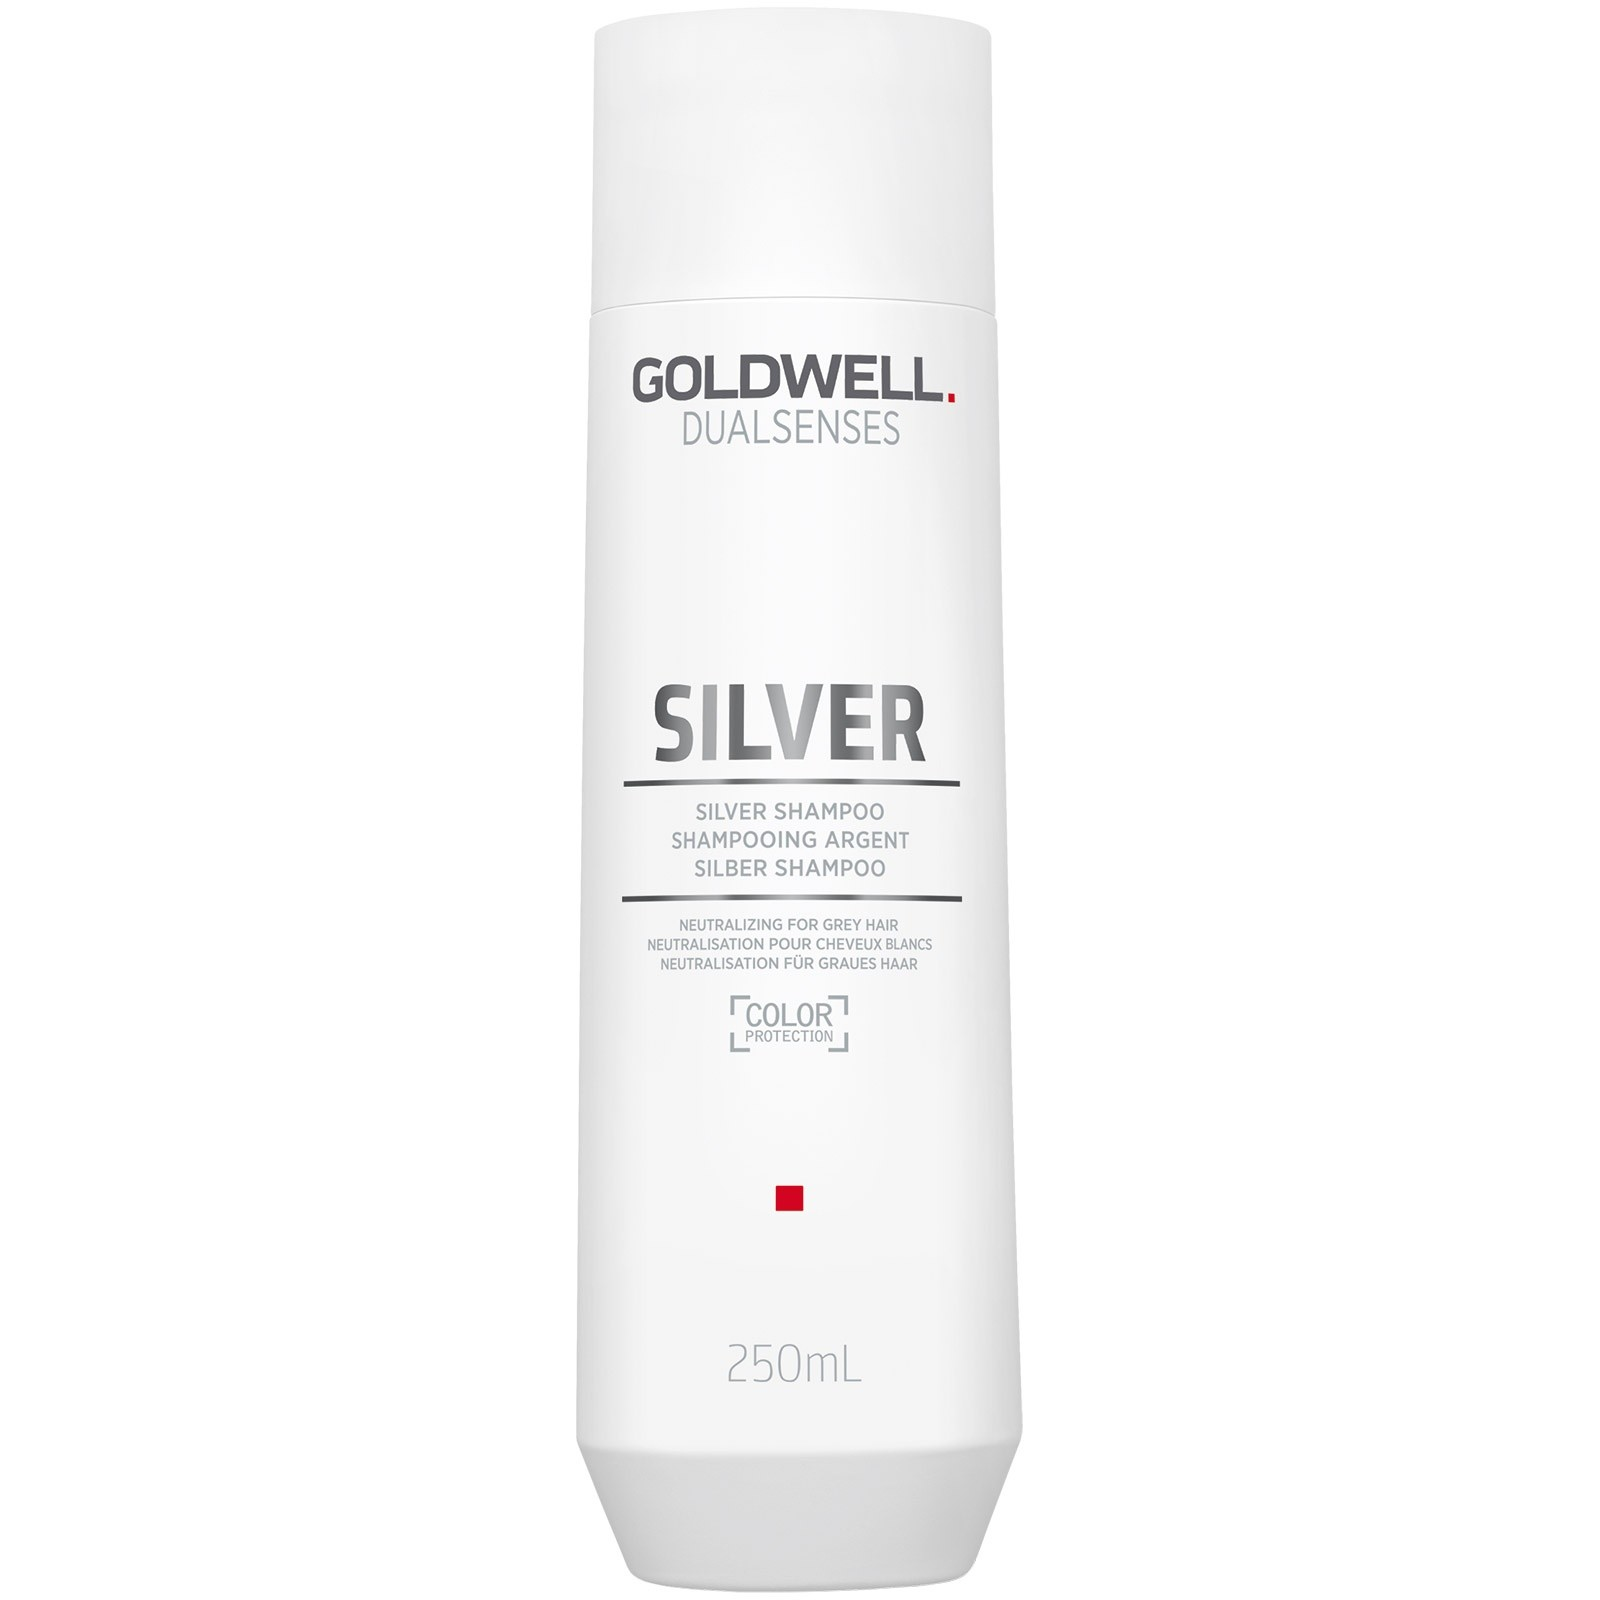 Goldwel Dualsenses Silver Shampoo 250 ml